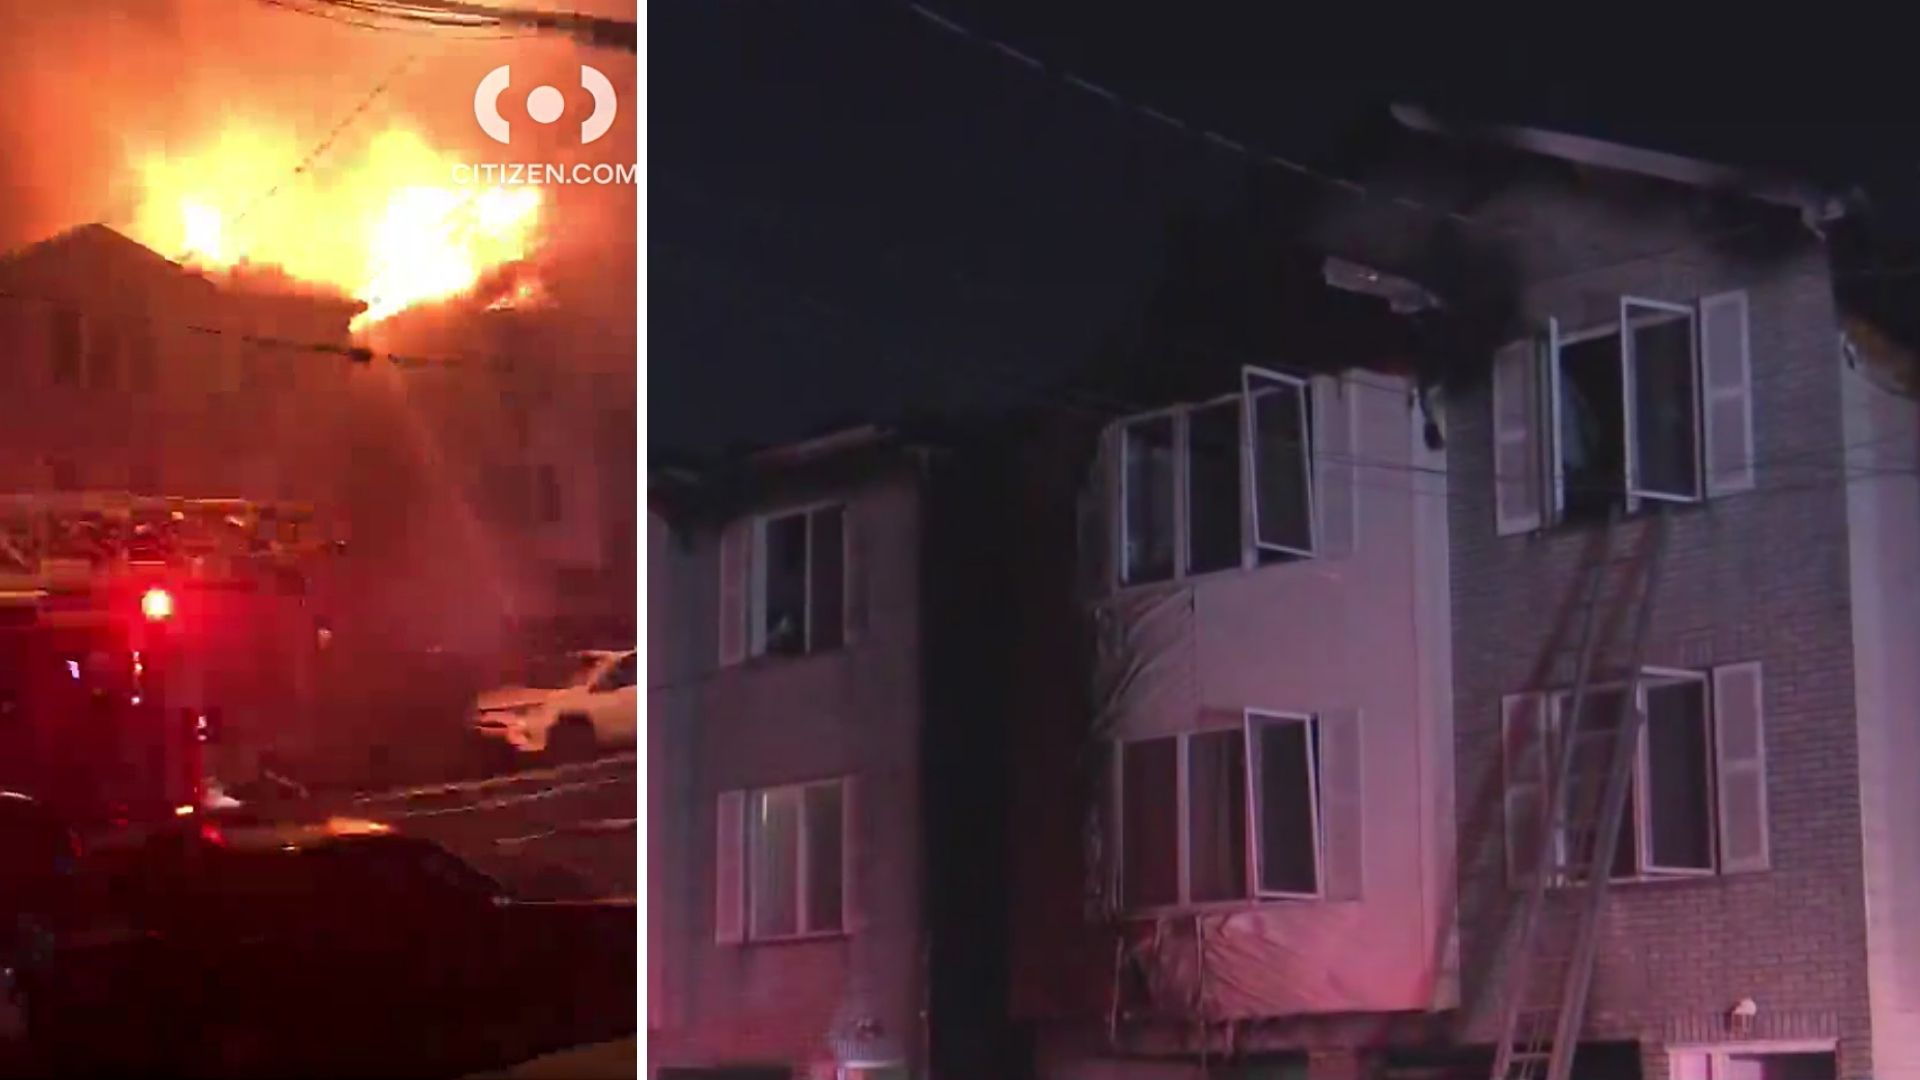 Flames seen burning through several homes on a Jersey City street early Monday, April 5, 2021; damage to the row of homes seen hours later. (Citizen App/PIX11 news)